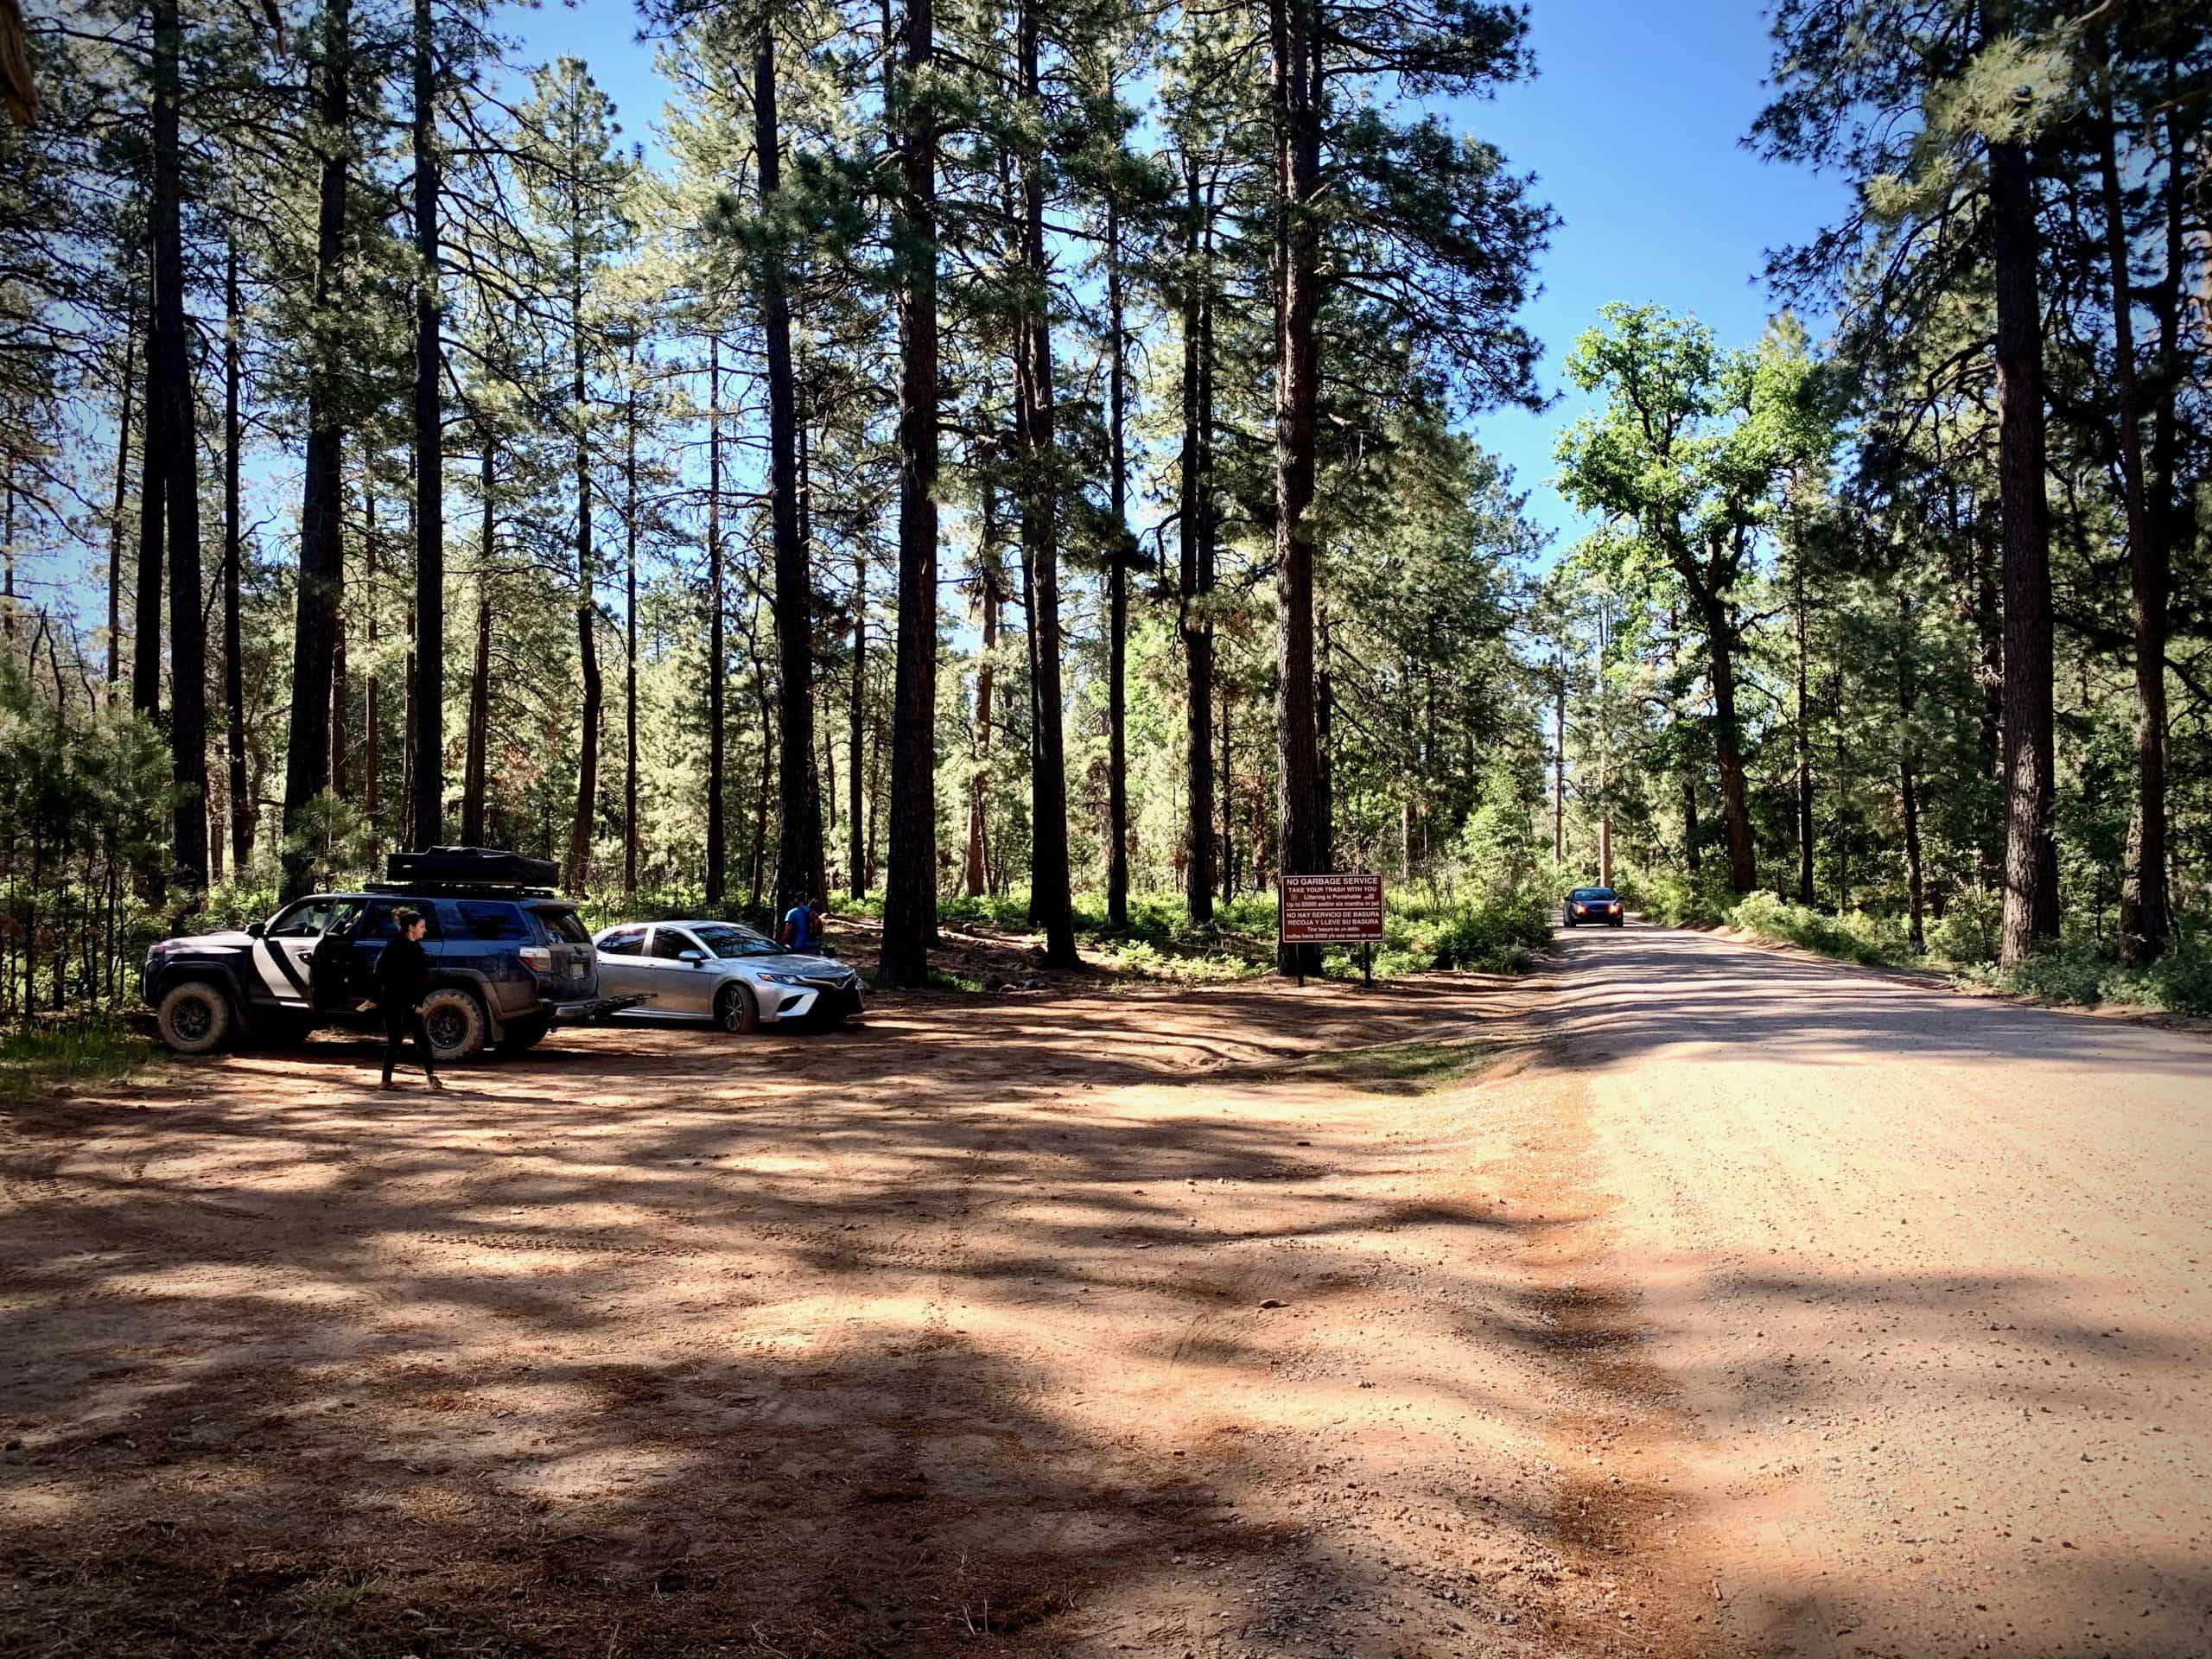 The parking area at the intersection of the Rim Road (NF 300) and Arizona State Route 87.